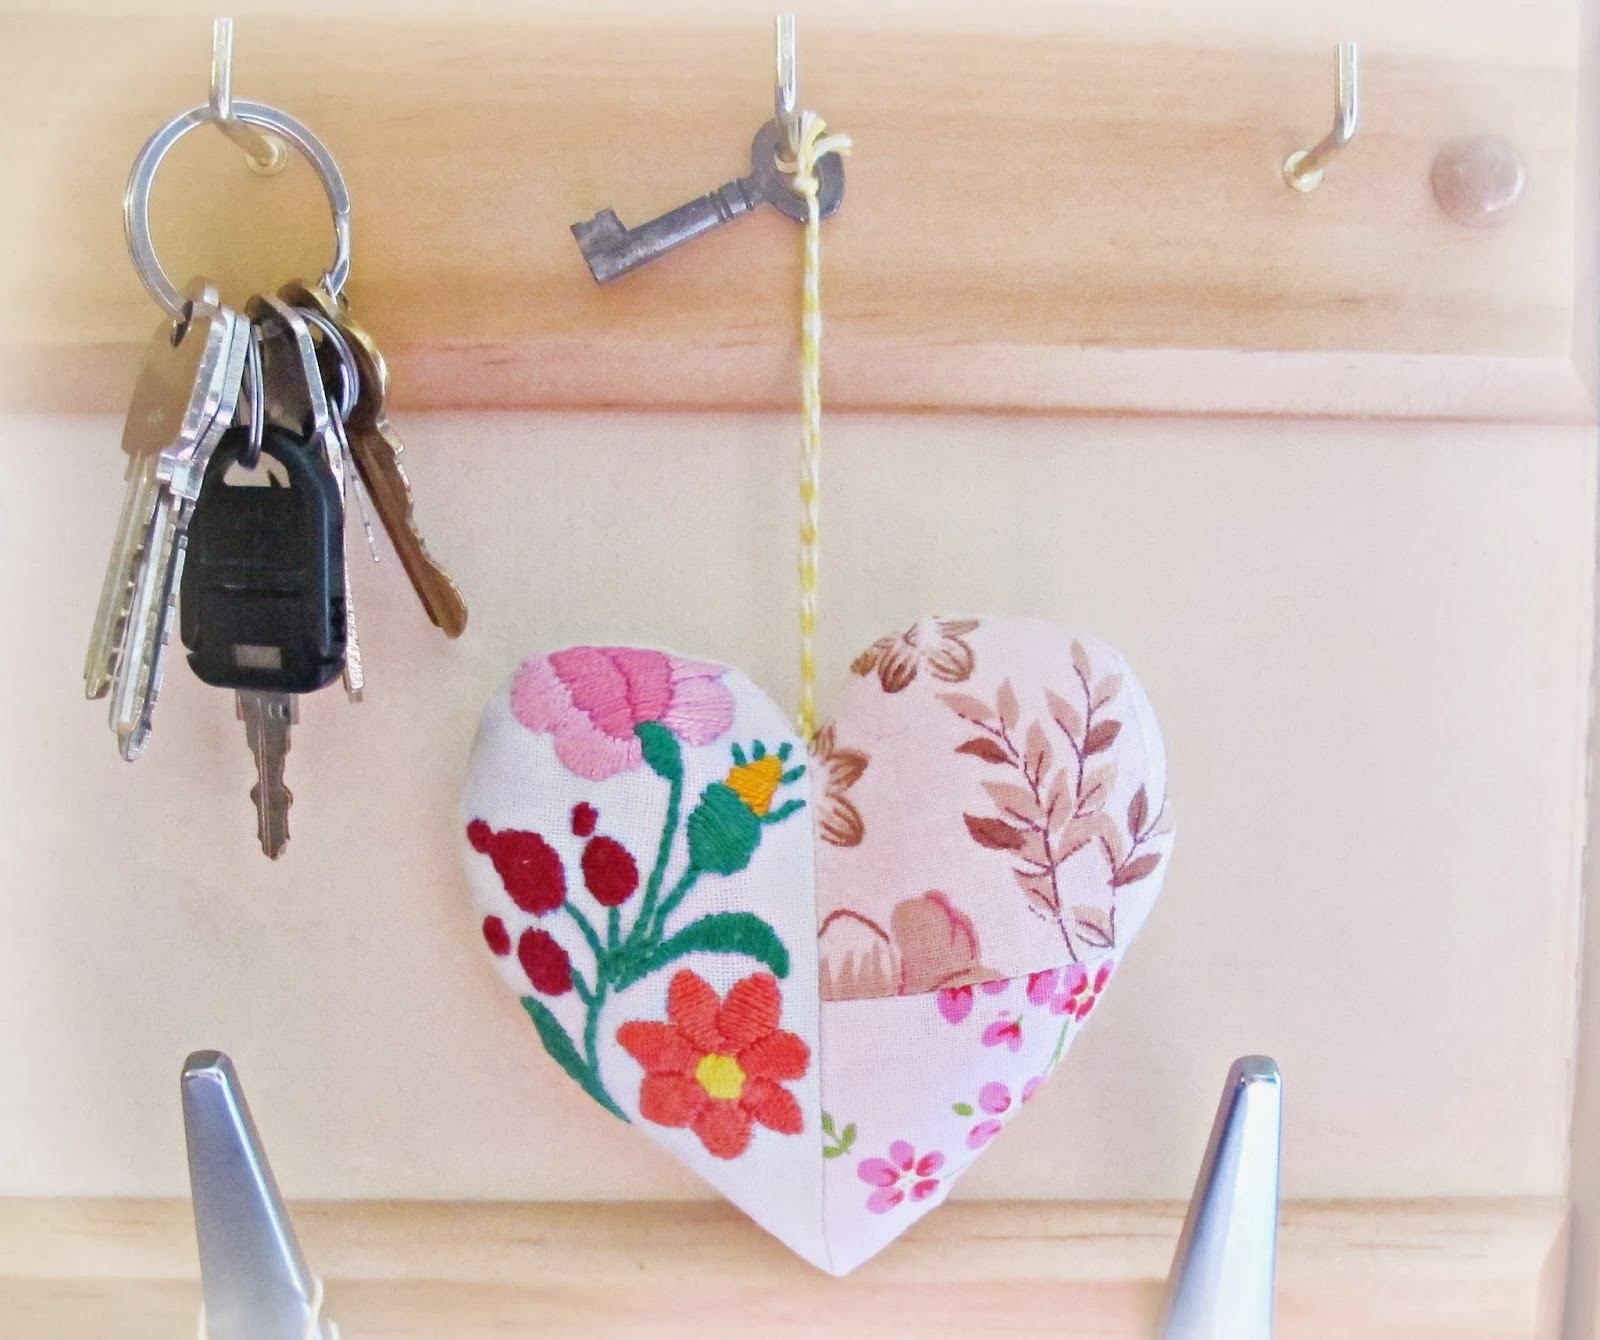 image key to my heart patchwork vintage embroidery pink white skeleton key domum vindemia ornament pincushion